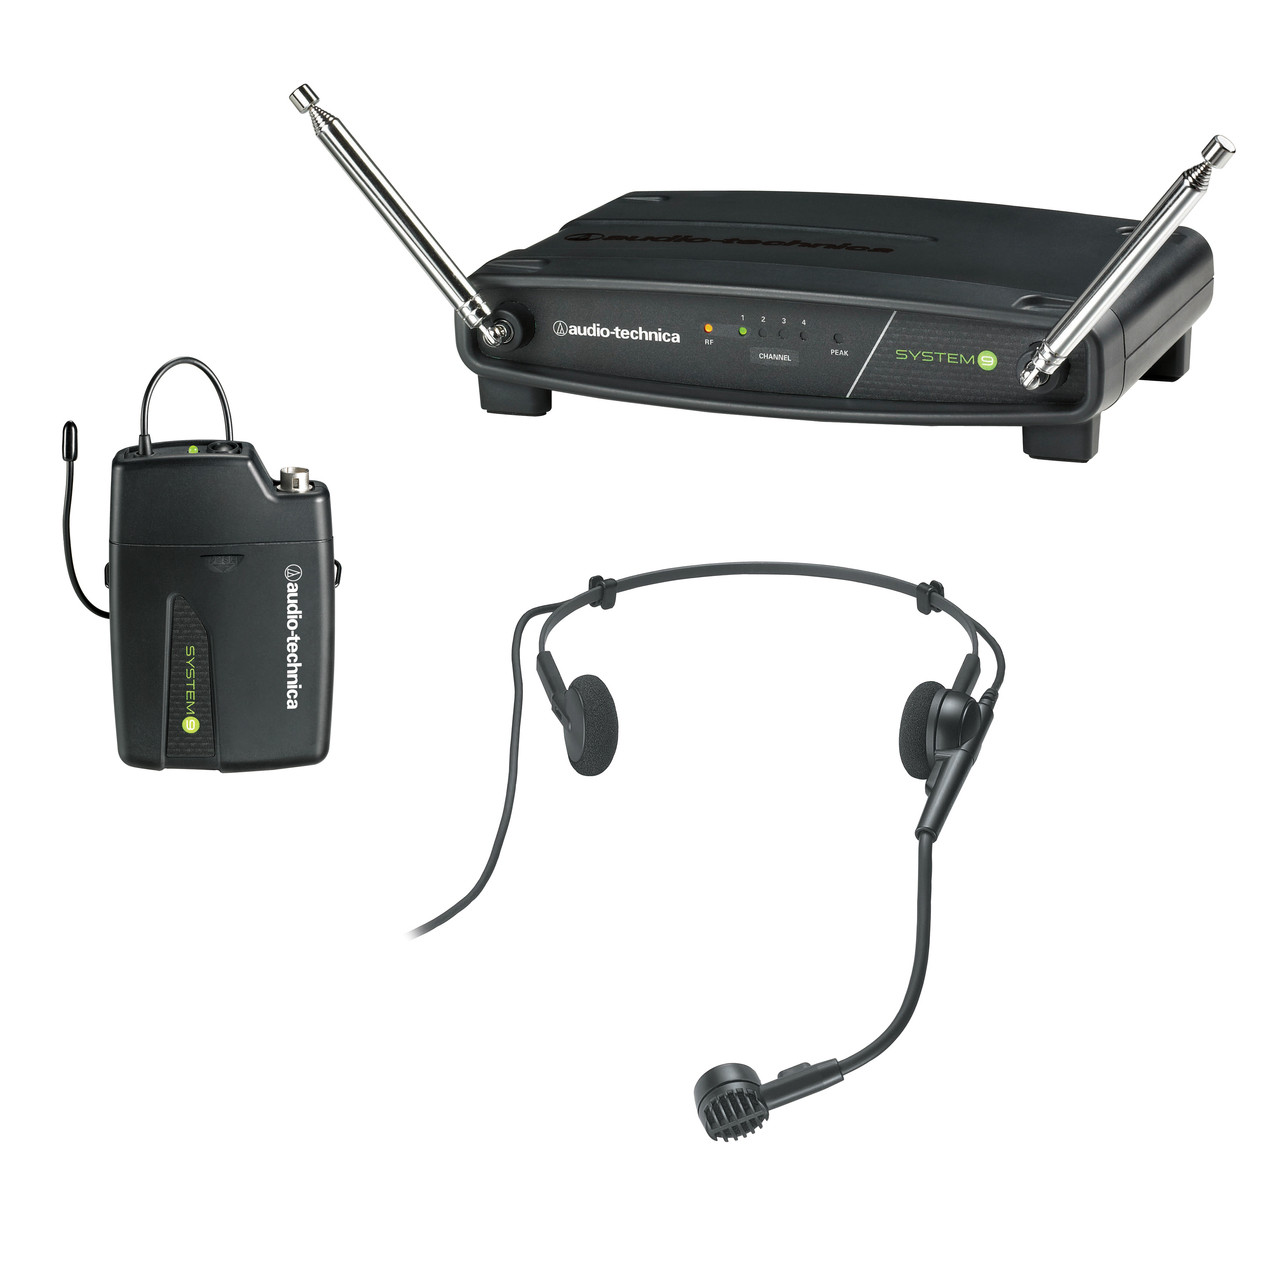 Audio Technica ATW-327 VHF Wireless Microphone or Guitar SYSTEM